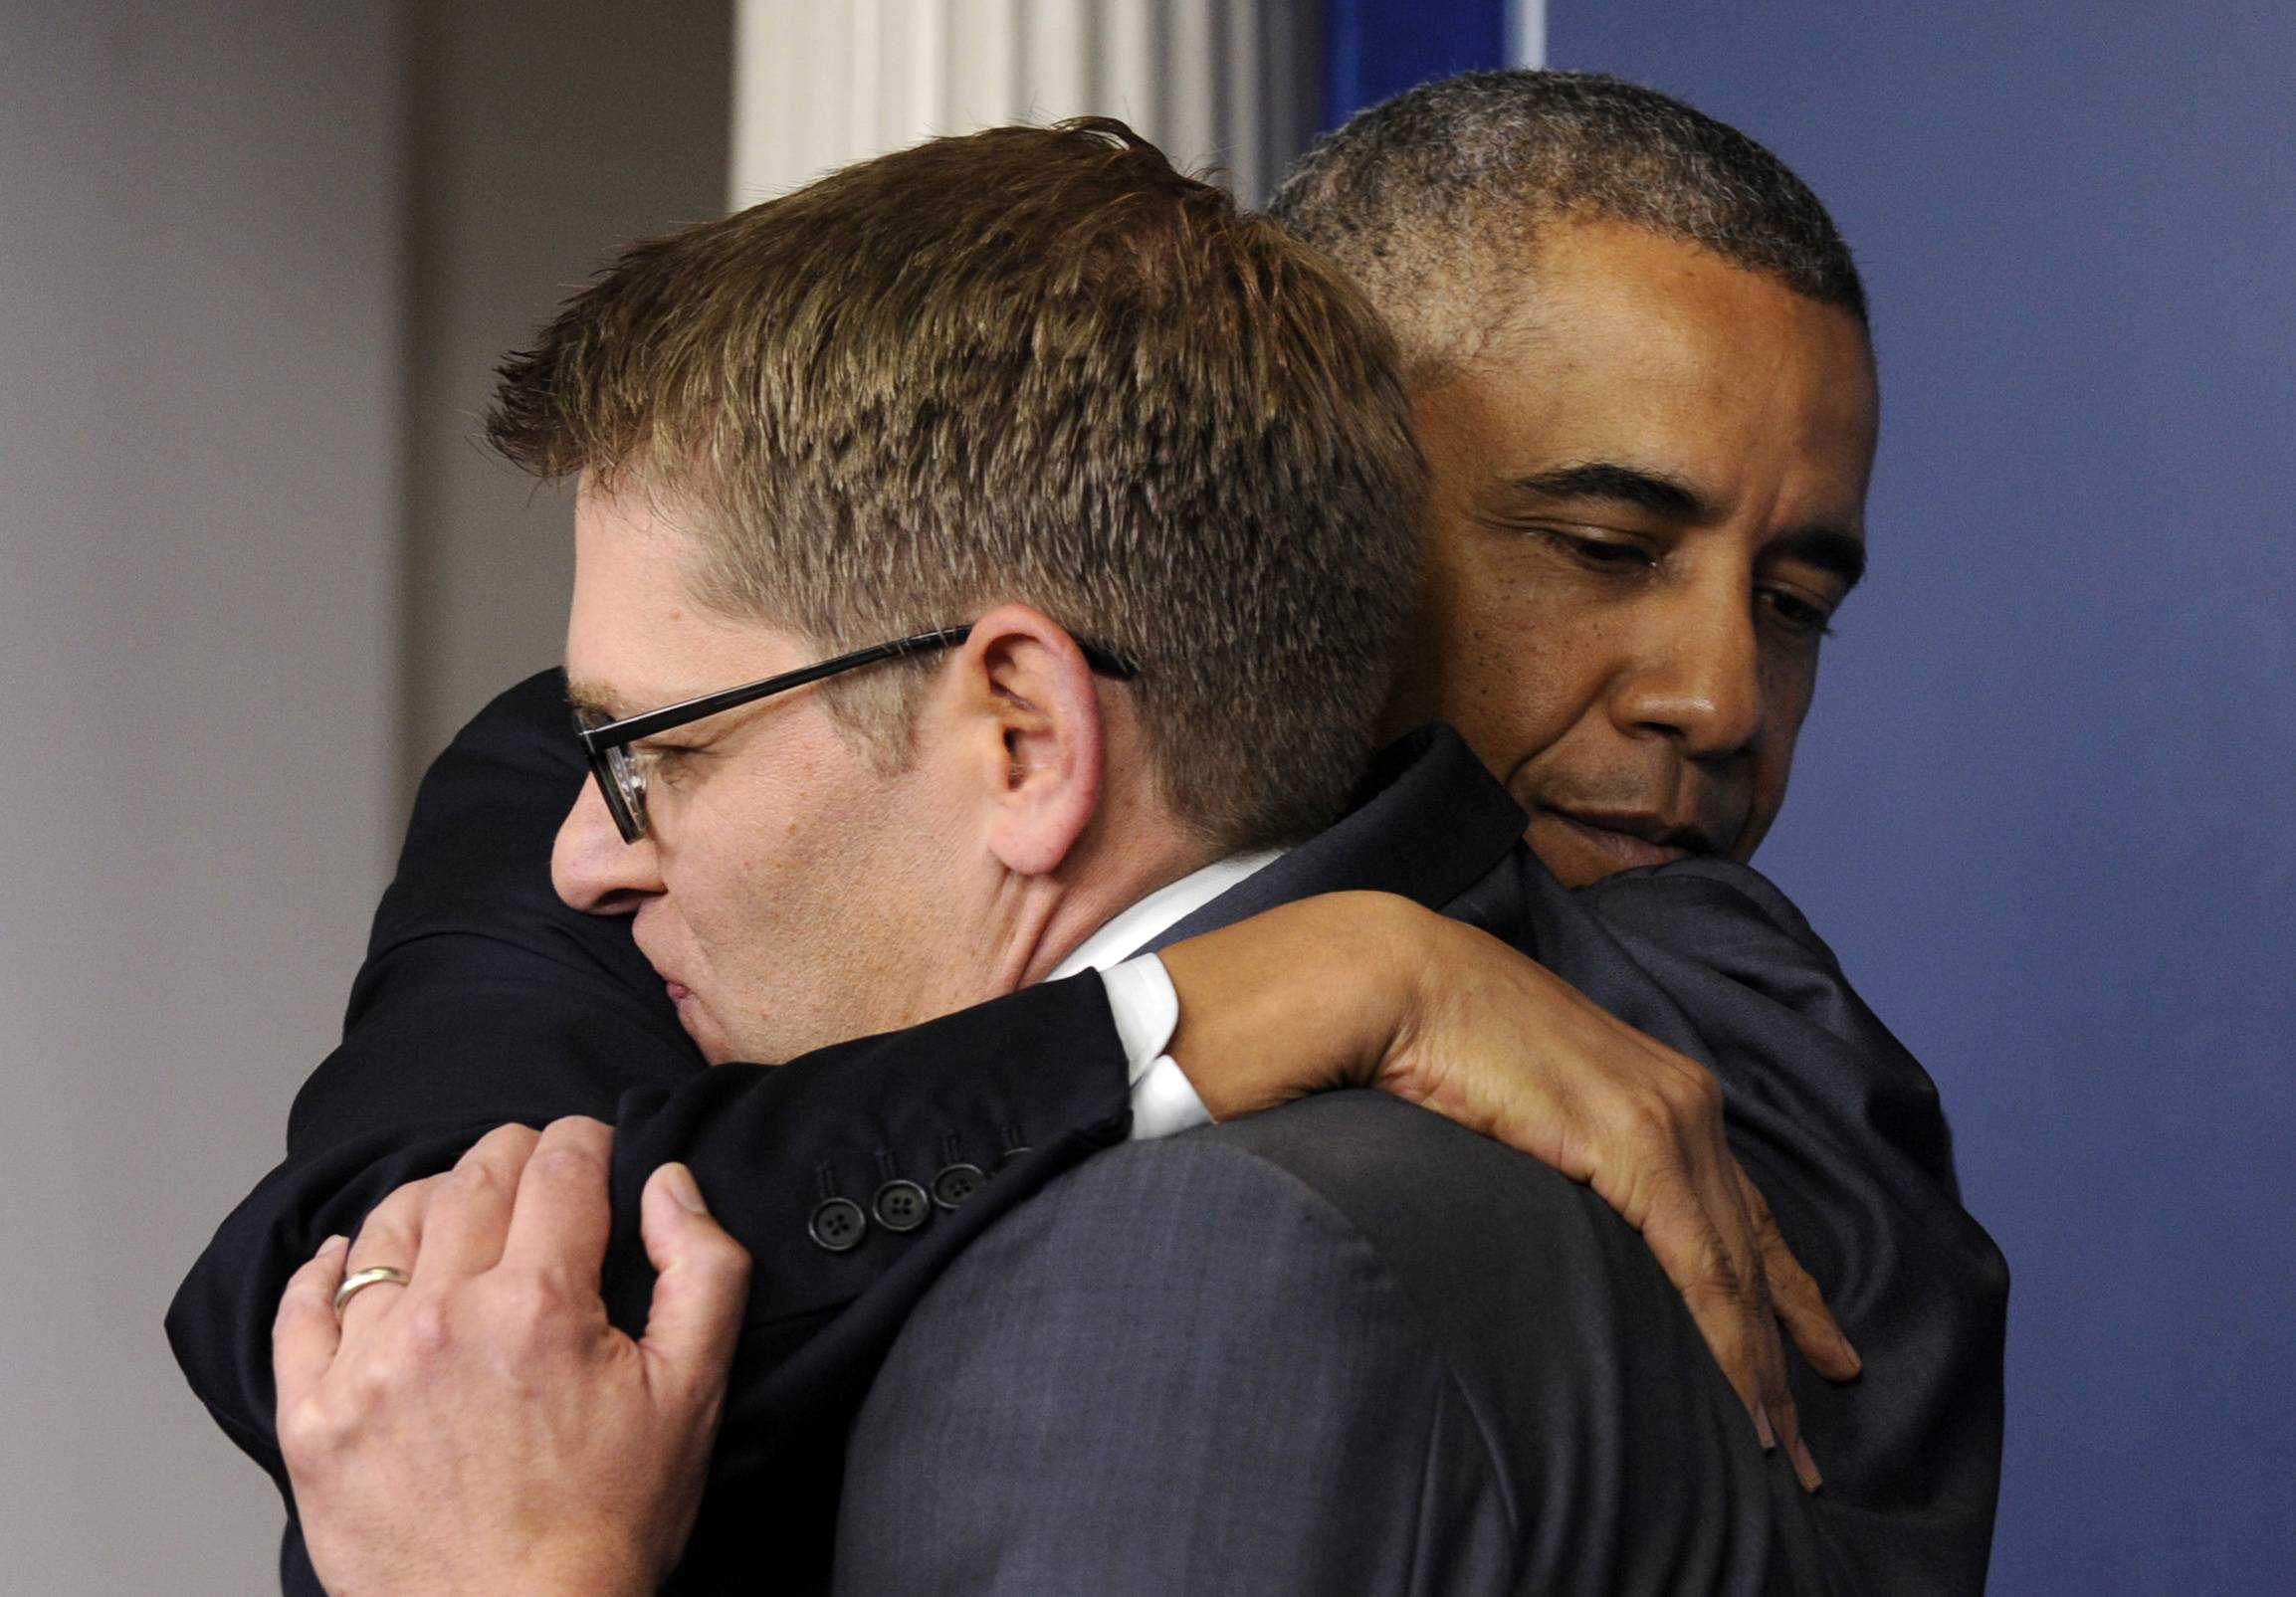 President Barack Obama gives White House press secretary Jay Carney a hug after announcing that Carney will step down later next month, during a surprise visit Friday to the Brady Press Briefing Room of the White House.